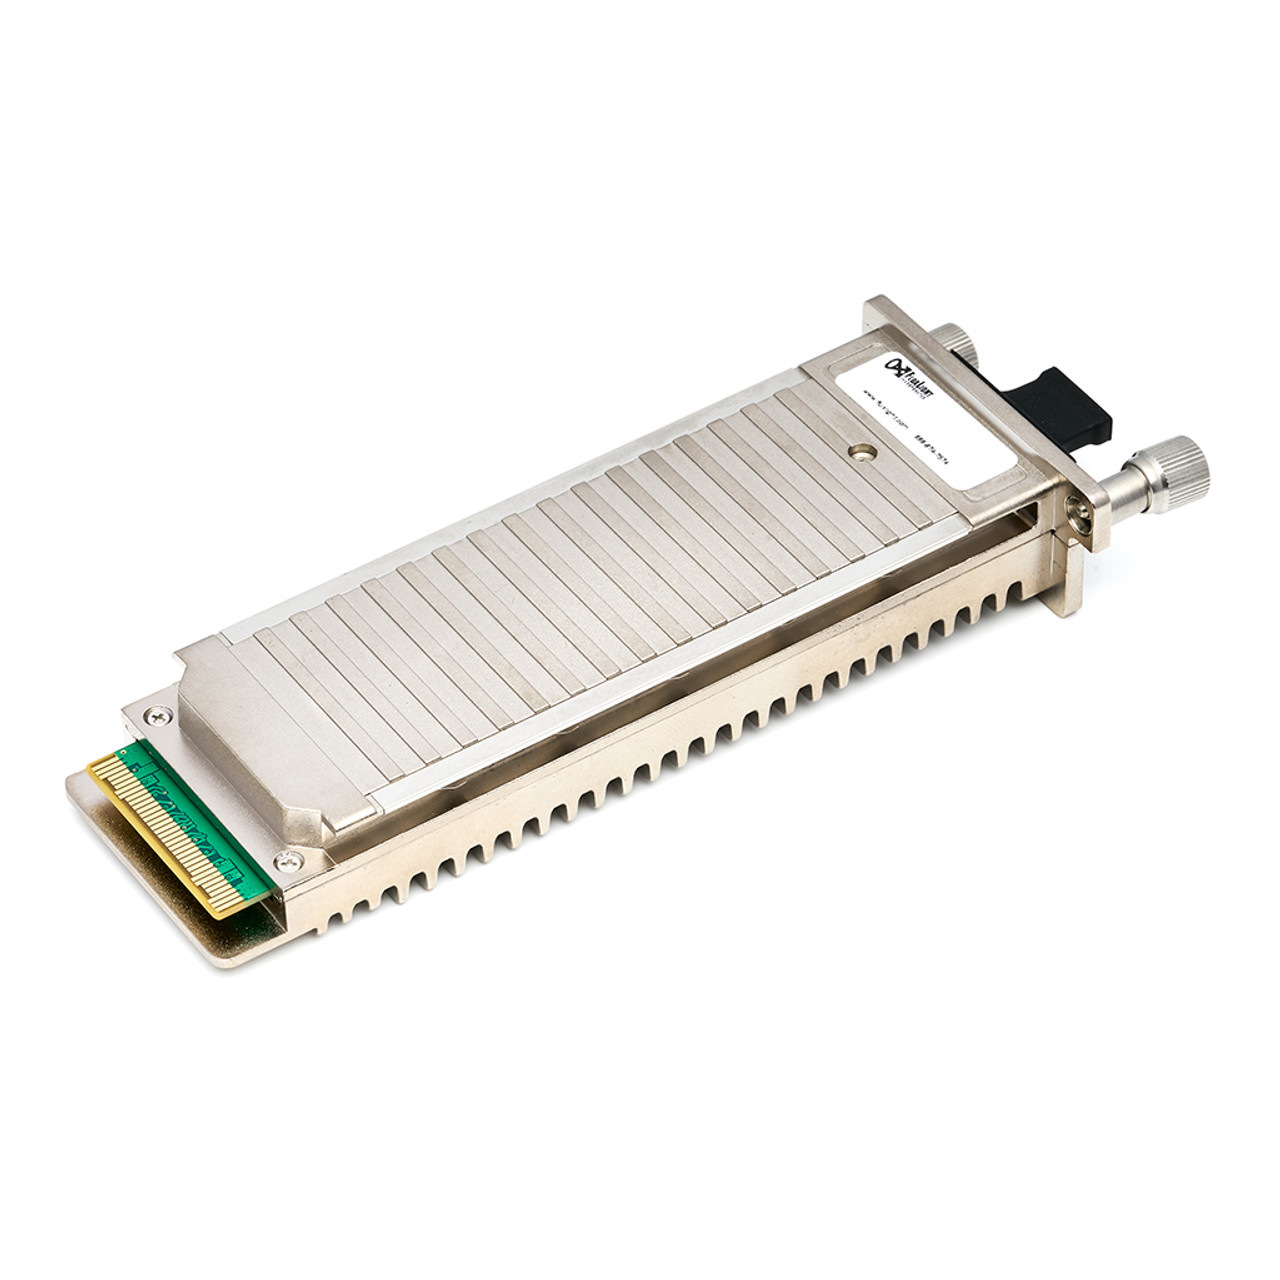 FOR Extreme Networks 10121 10GBase-SR 850nm 300m 10G SC XFP  Optical Transceiver